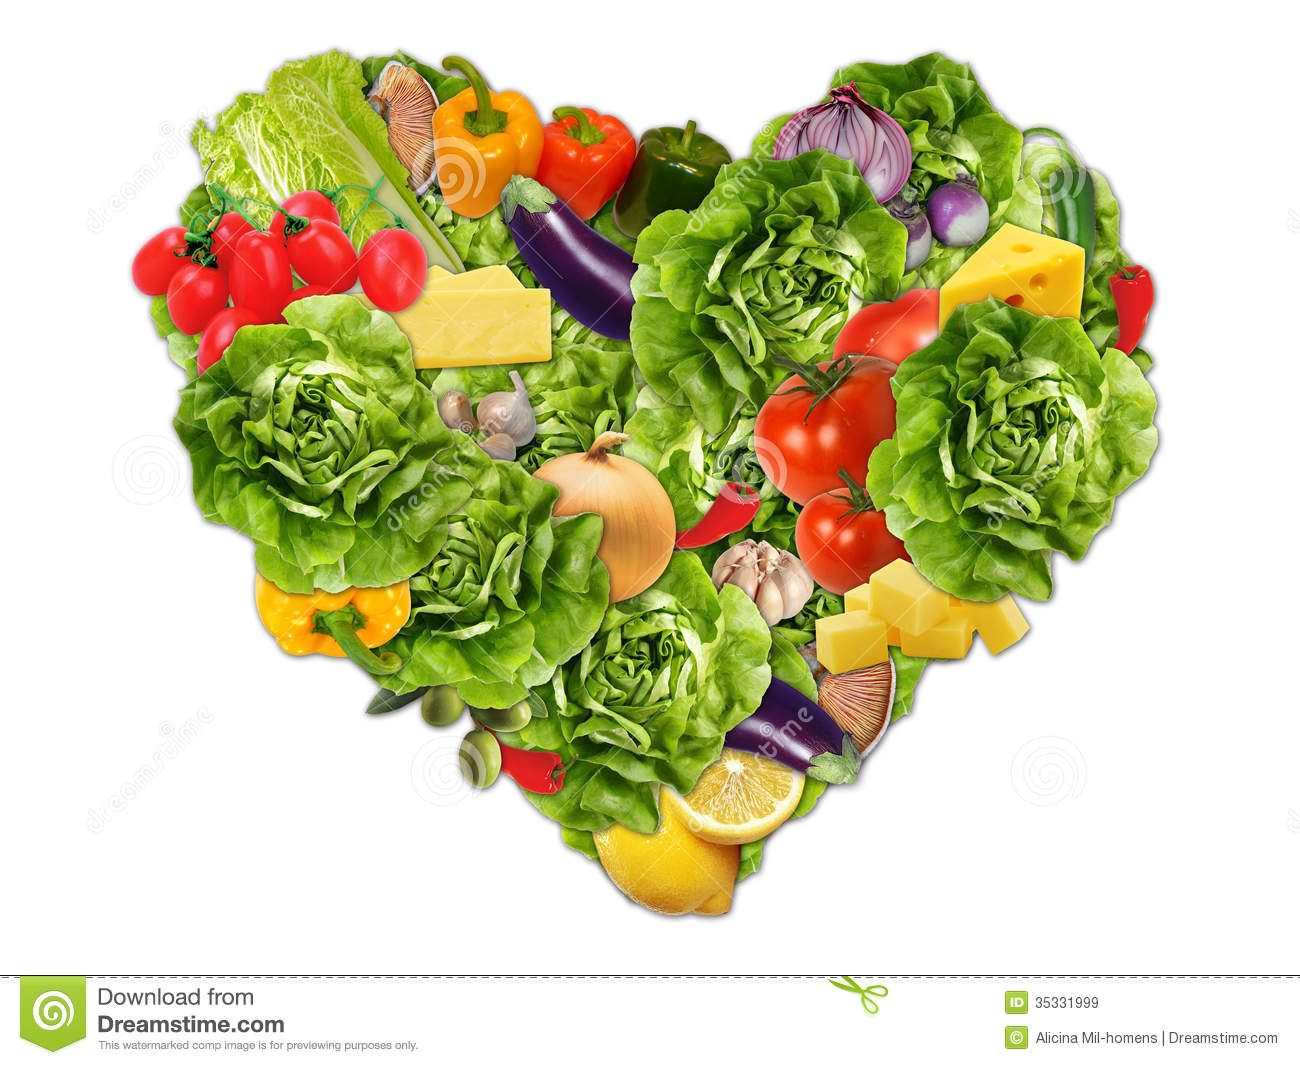 Royalty Free Stock Images Healthy Food Colorful Heart Performed Vegetables Image35331999 on Sounds Of Farm Animals